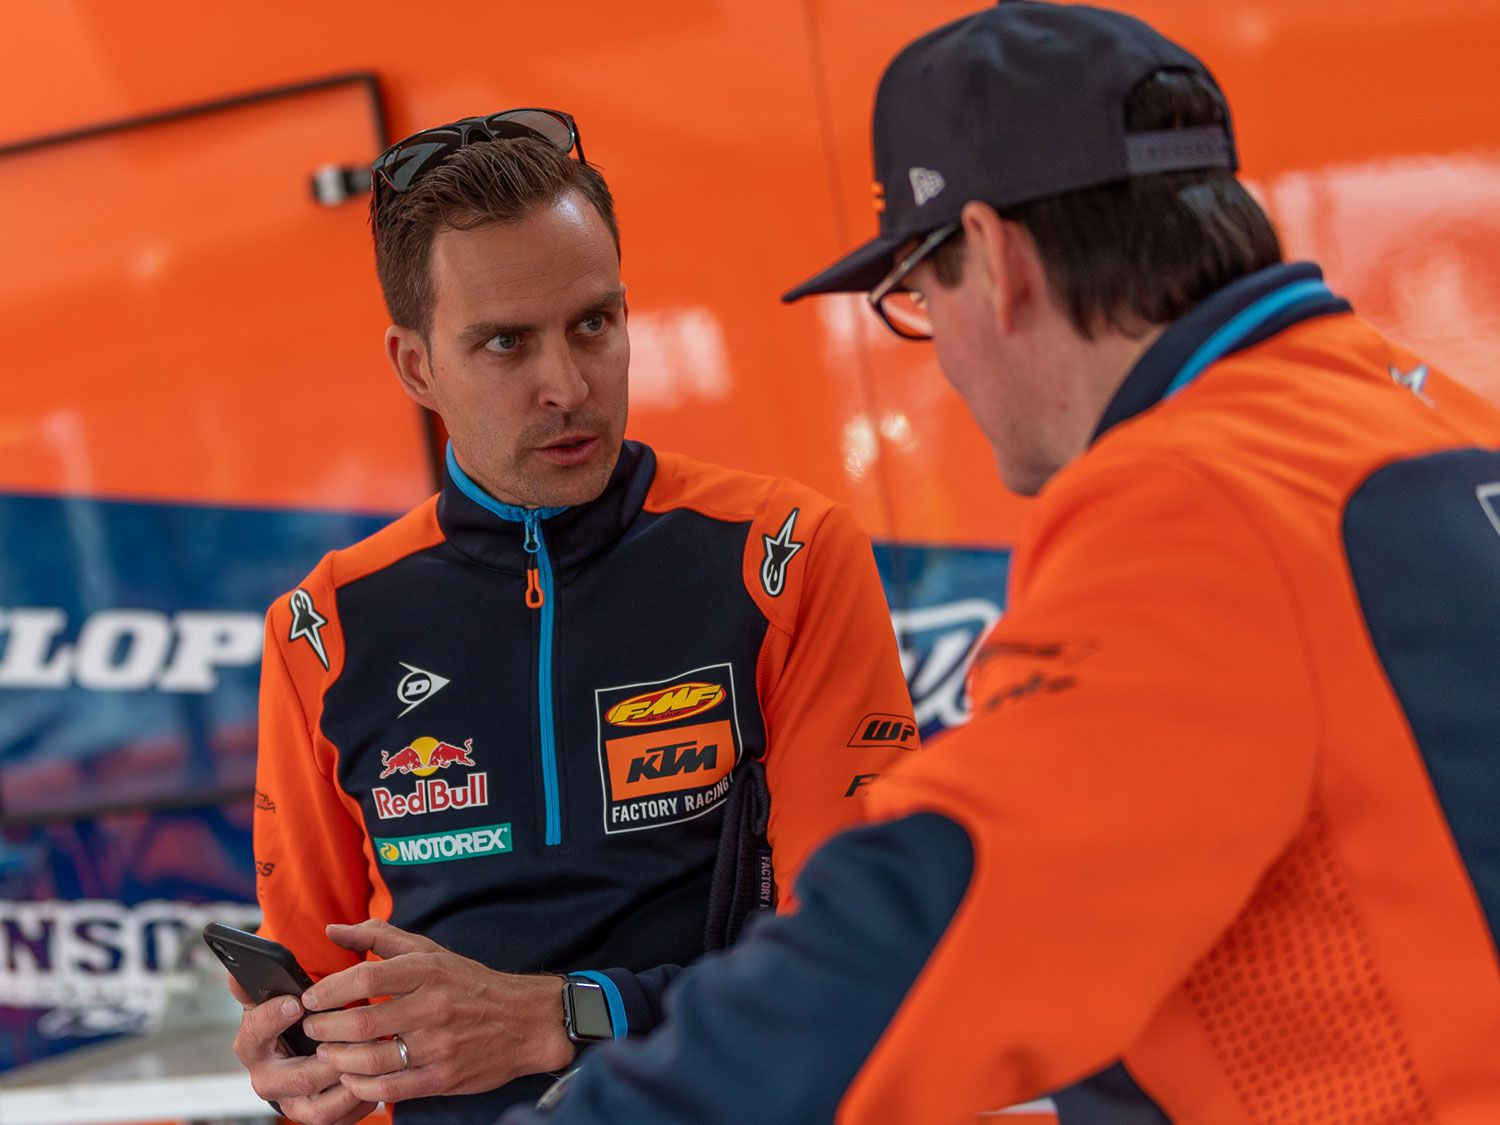 KTM's off-road team manager Antti Kallonen runs a tight ship that is clean and organized.